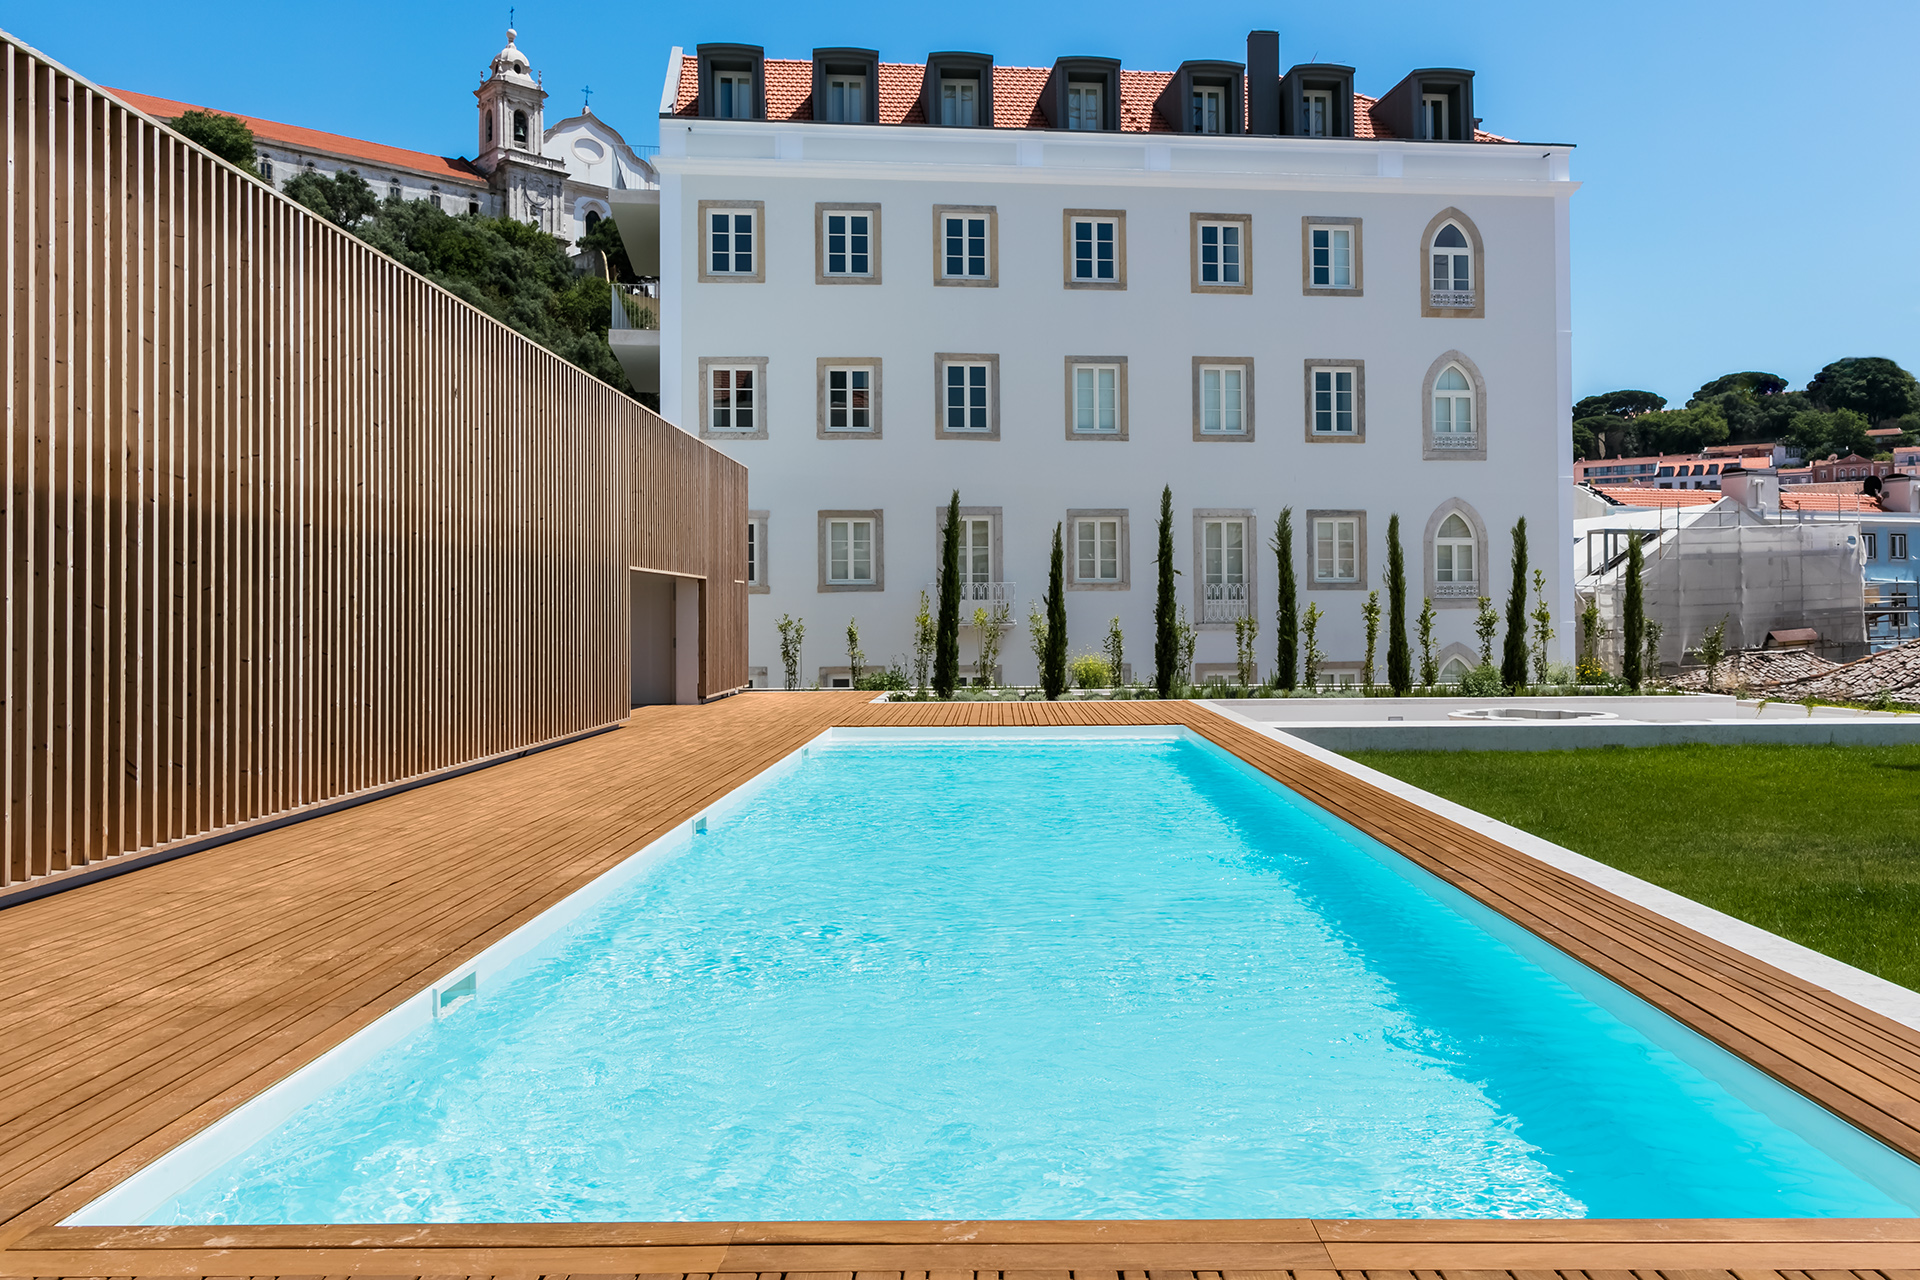 POOL APARTMENT CENTER LISBON